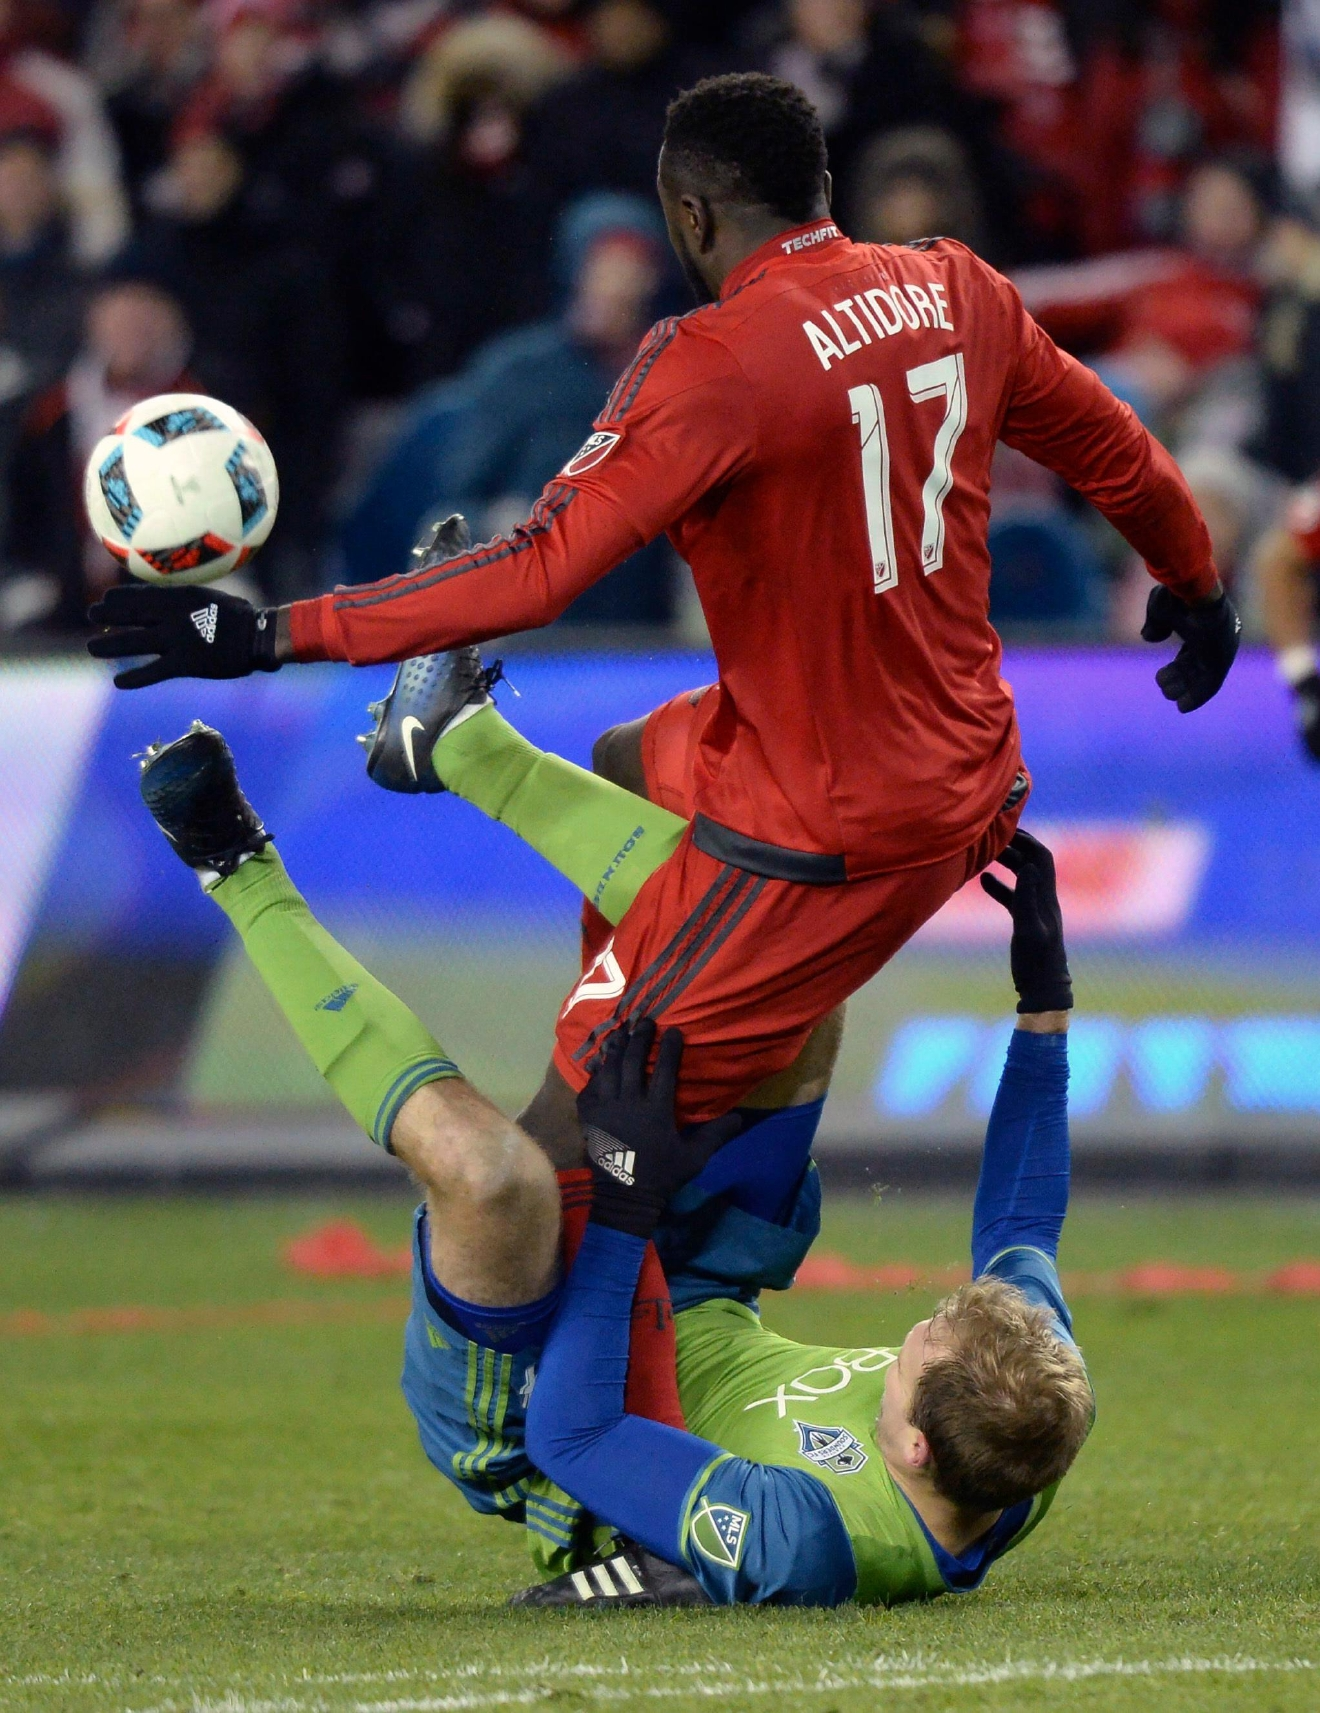 Seattle Sounders defender Chad Marshall, bottom, is taken down by Toronto FC forward Jozy Altidore (17) during second-half MLS Cup final soccer action in Toronto, Saturday, Dec. 10, 2016. (Nathan Denette/The Canadian Press via AP)